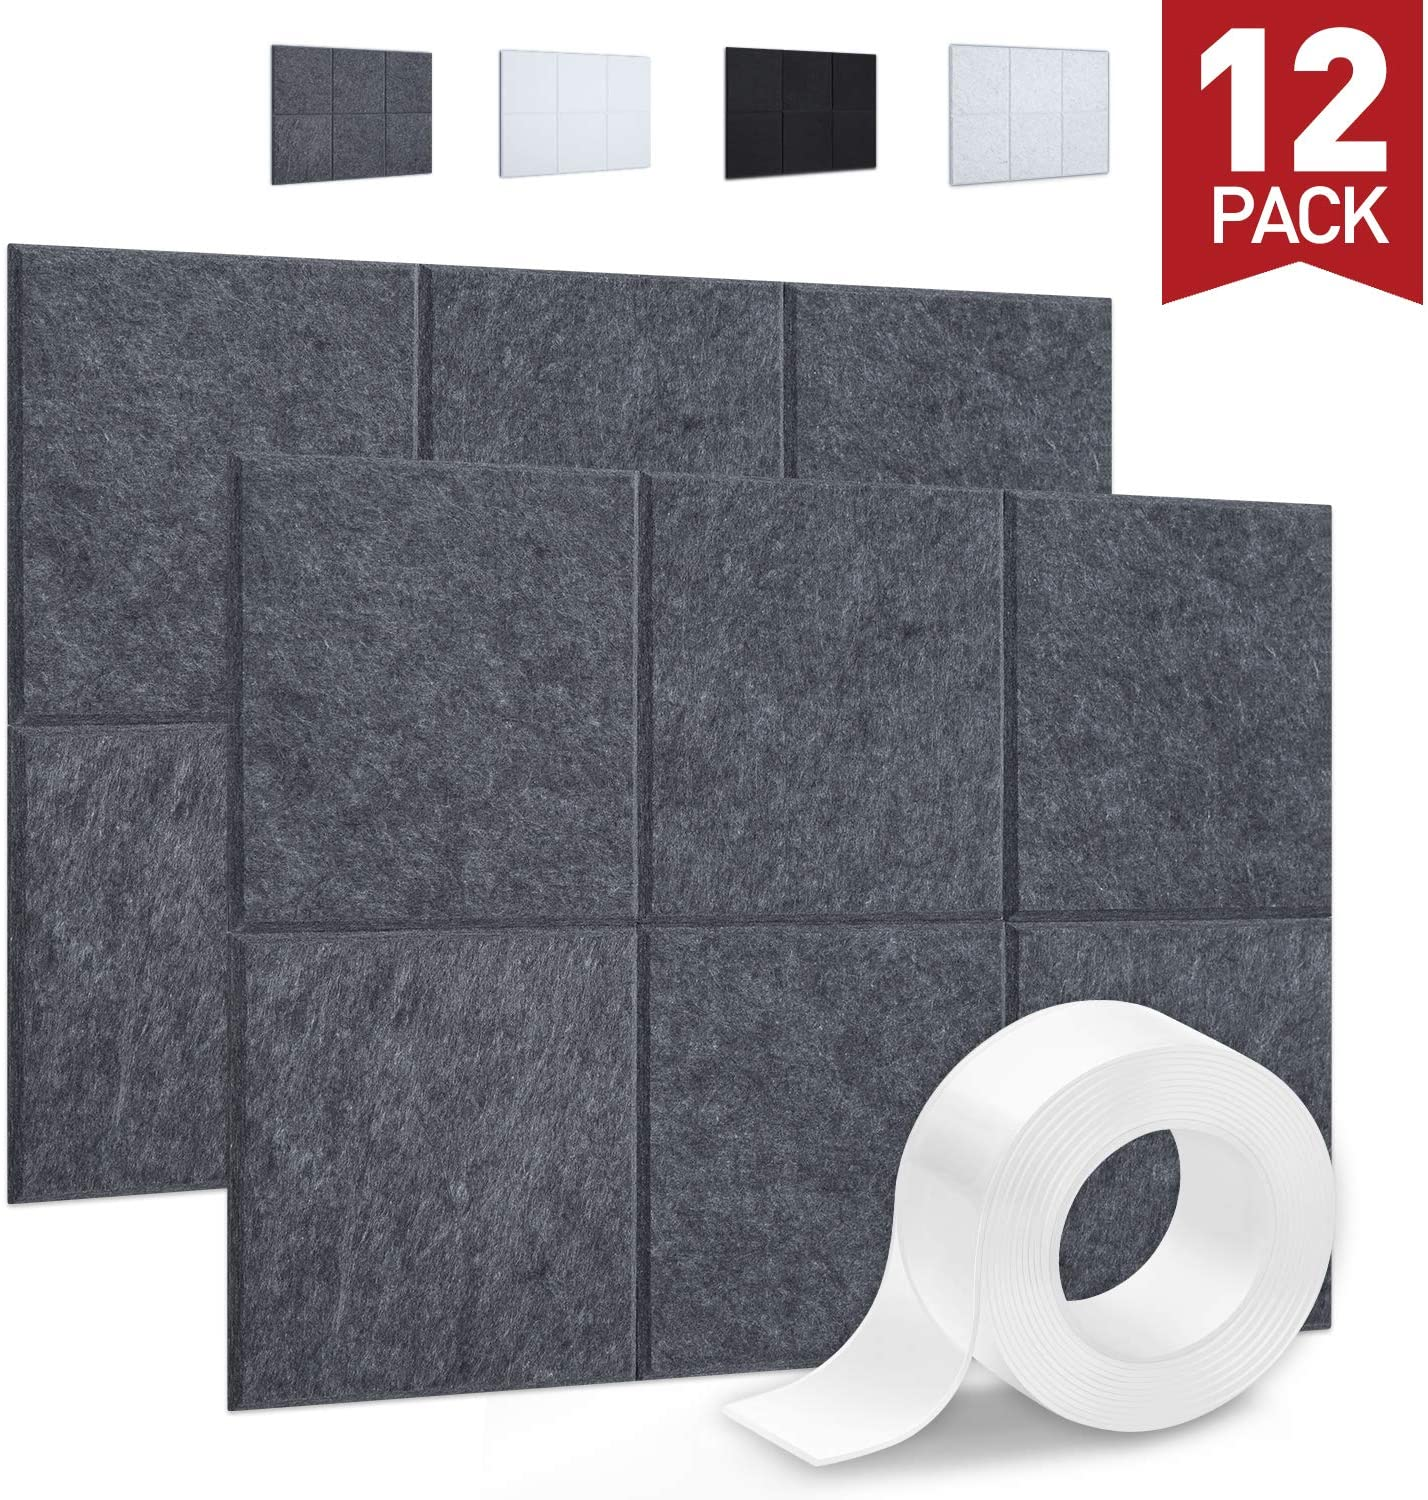 Focusound 12 Packs of Acoustic Panels, Sound Proof Padding Wall Panels with Double Side Adhesive Tape, Beveled Edge, 12